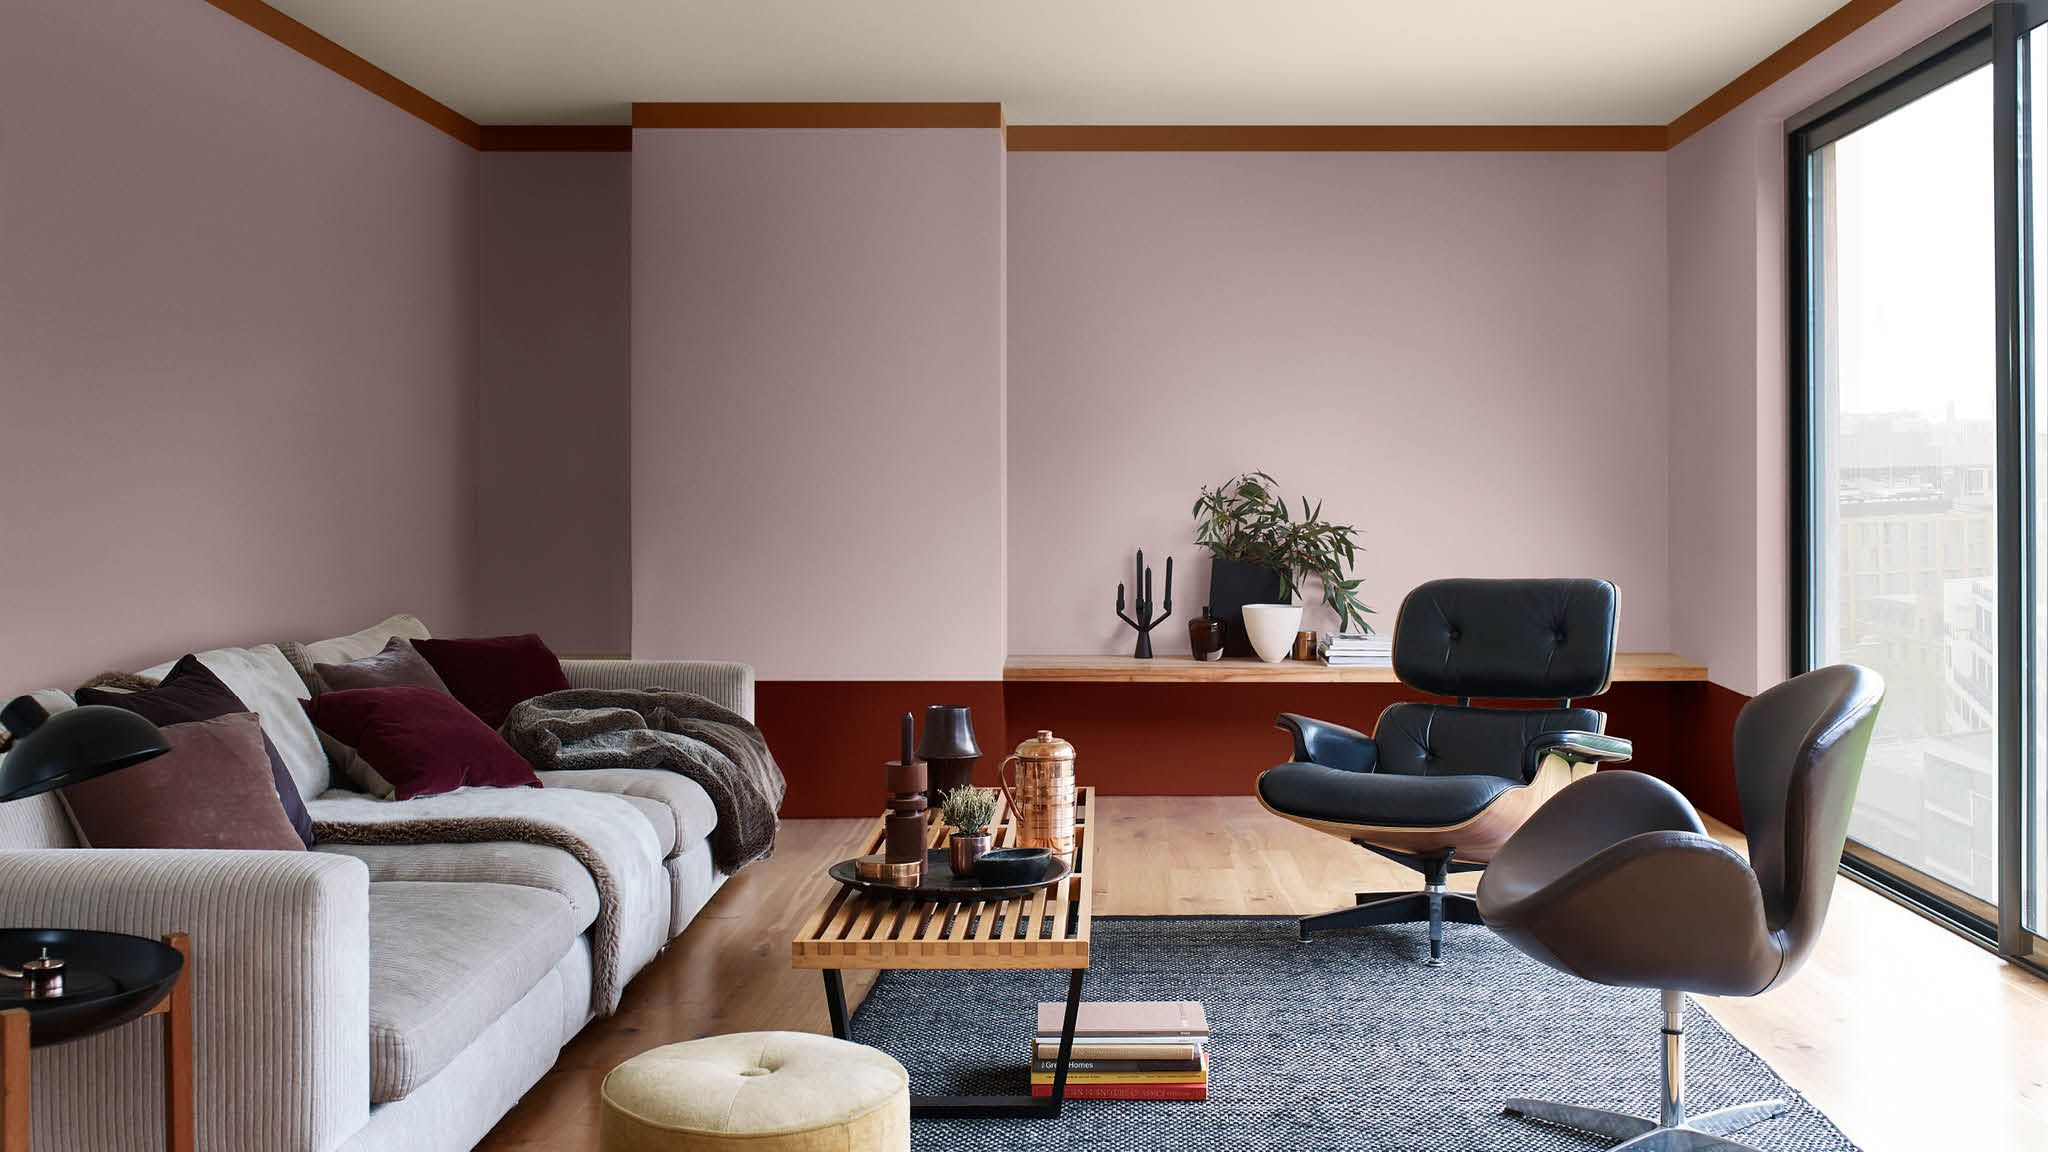 Knusse woonkamer in aardetinten | 2018 Color Trends - Heart Wood ...